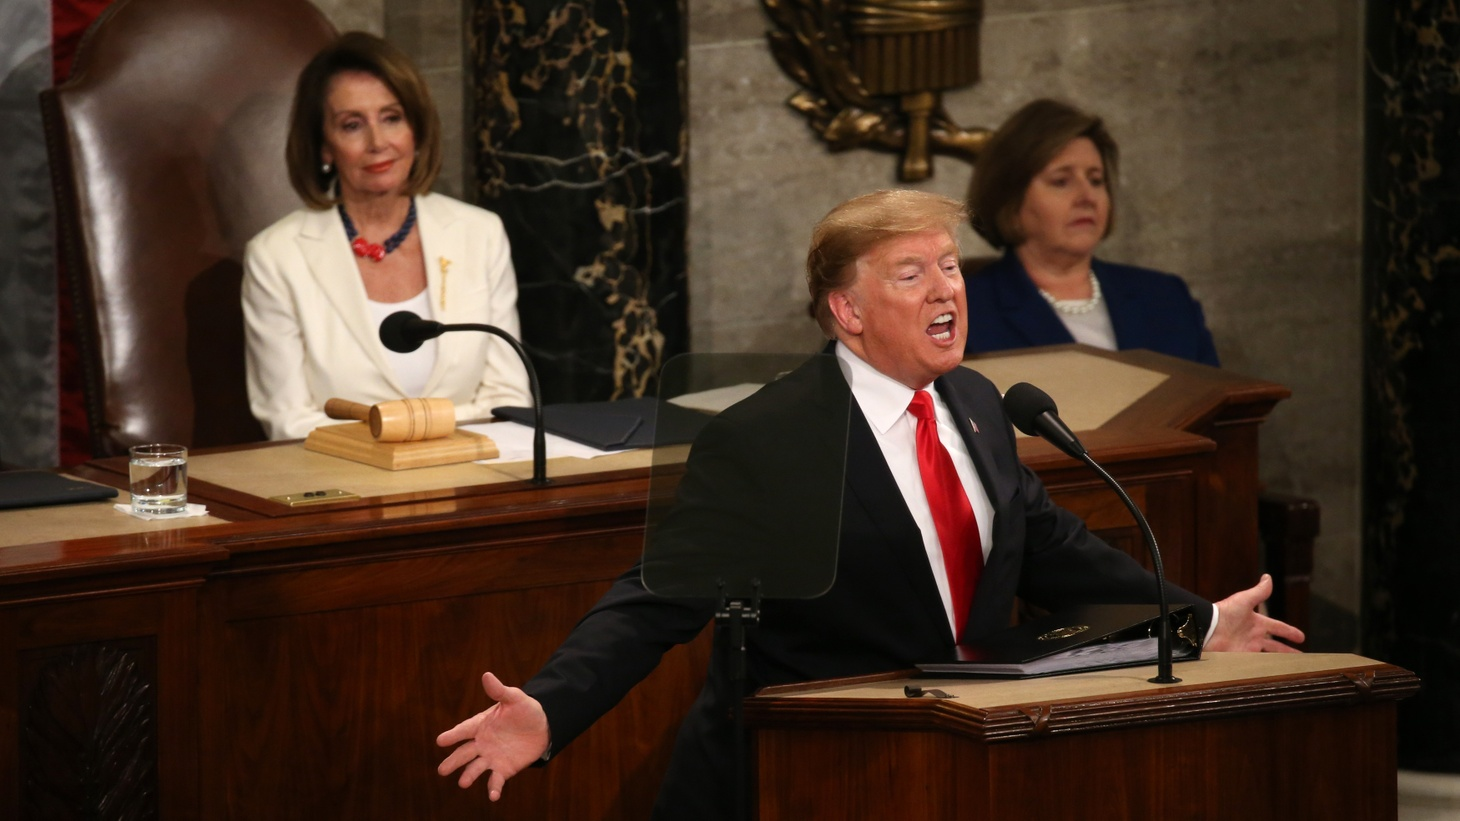 Speaker of the House Nancy Pelosi (D-CA) watches as U.S. President Donald Trump delivers his second State of the Union address to a joint session of the U.S. Congress in the House Chamber of the U.S. Capitol on Capitol Hill in Washington, U.S. February 5, 2019.